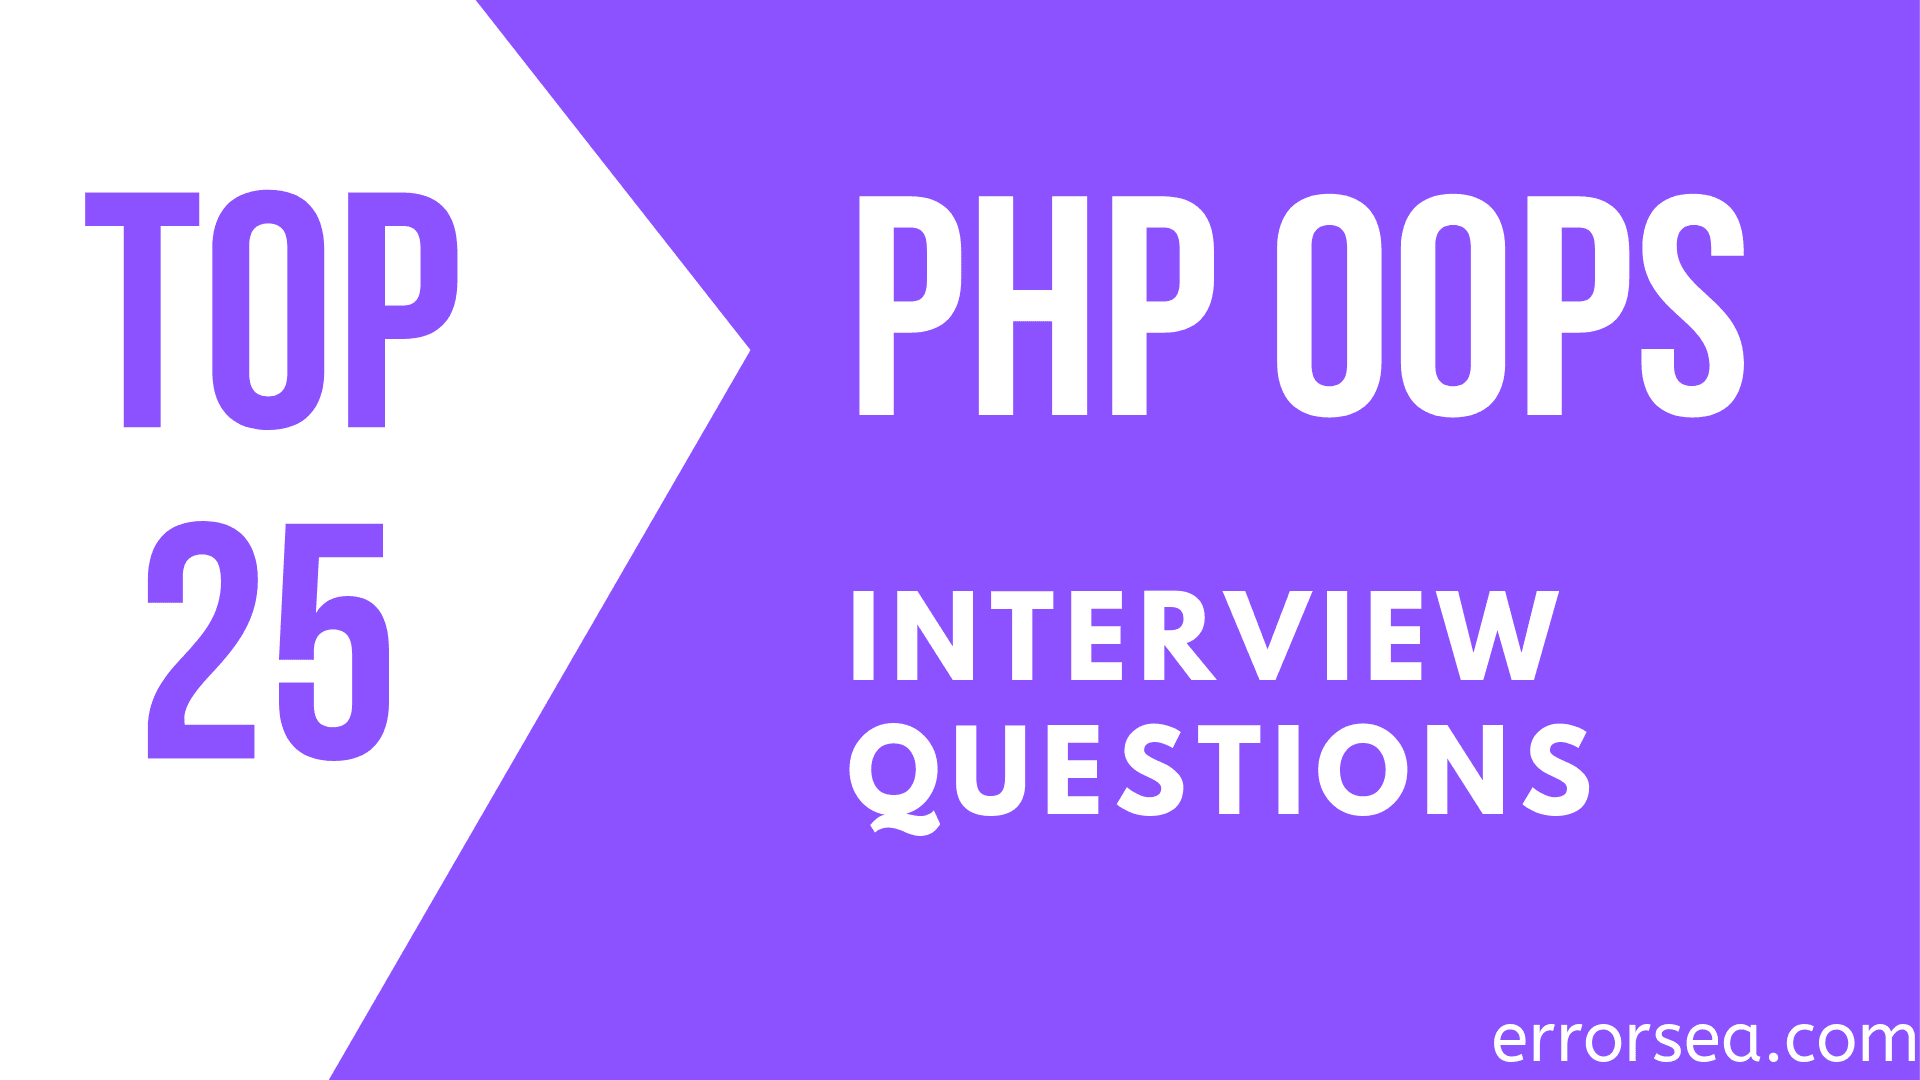 Top 25 PHP OOPS Interview Questions